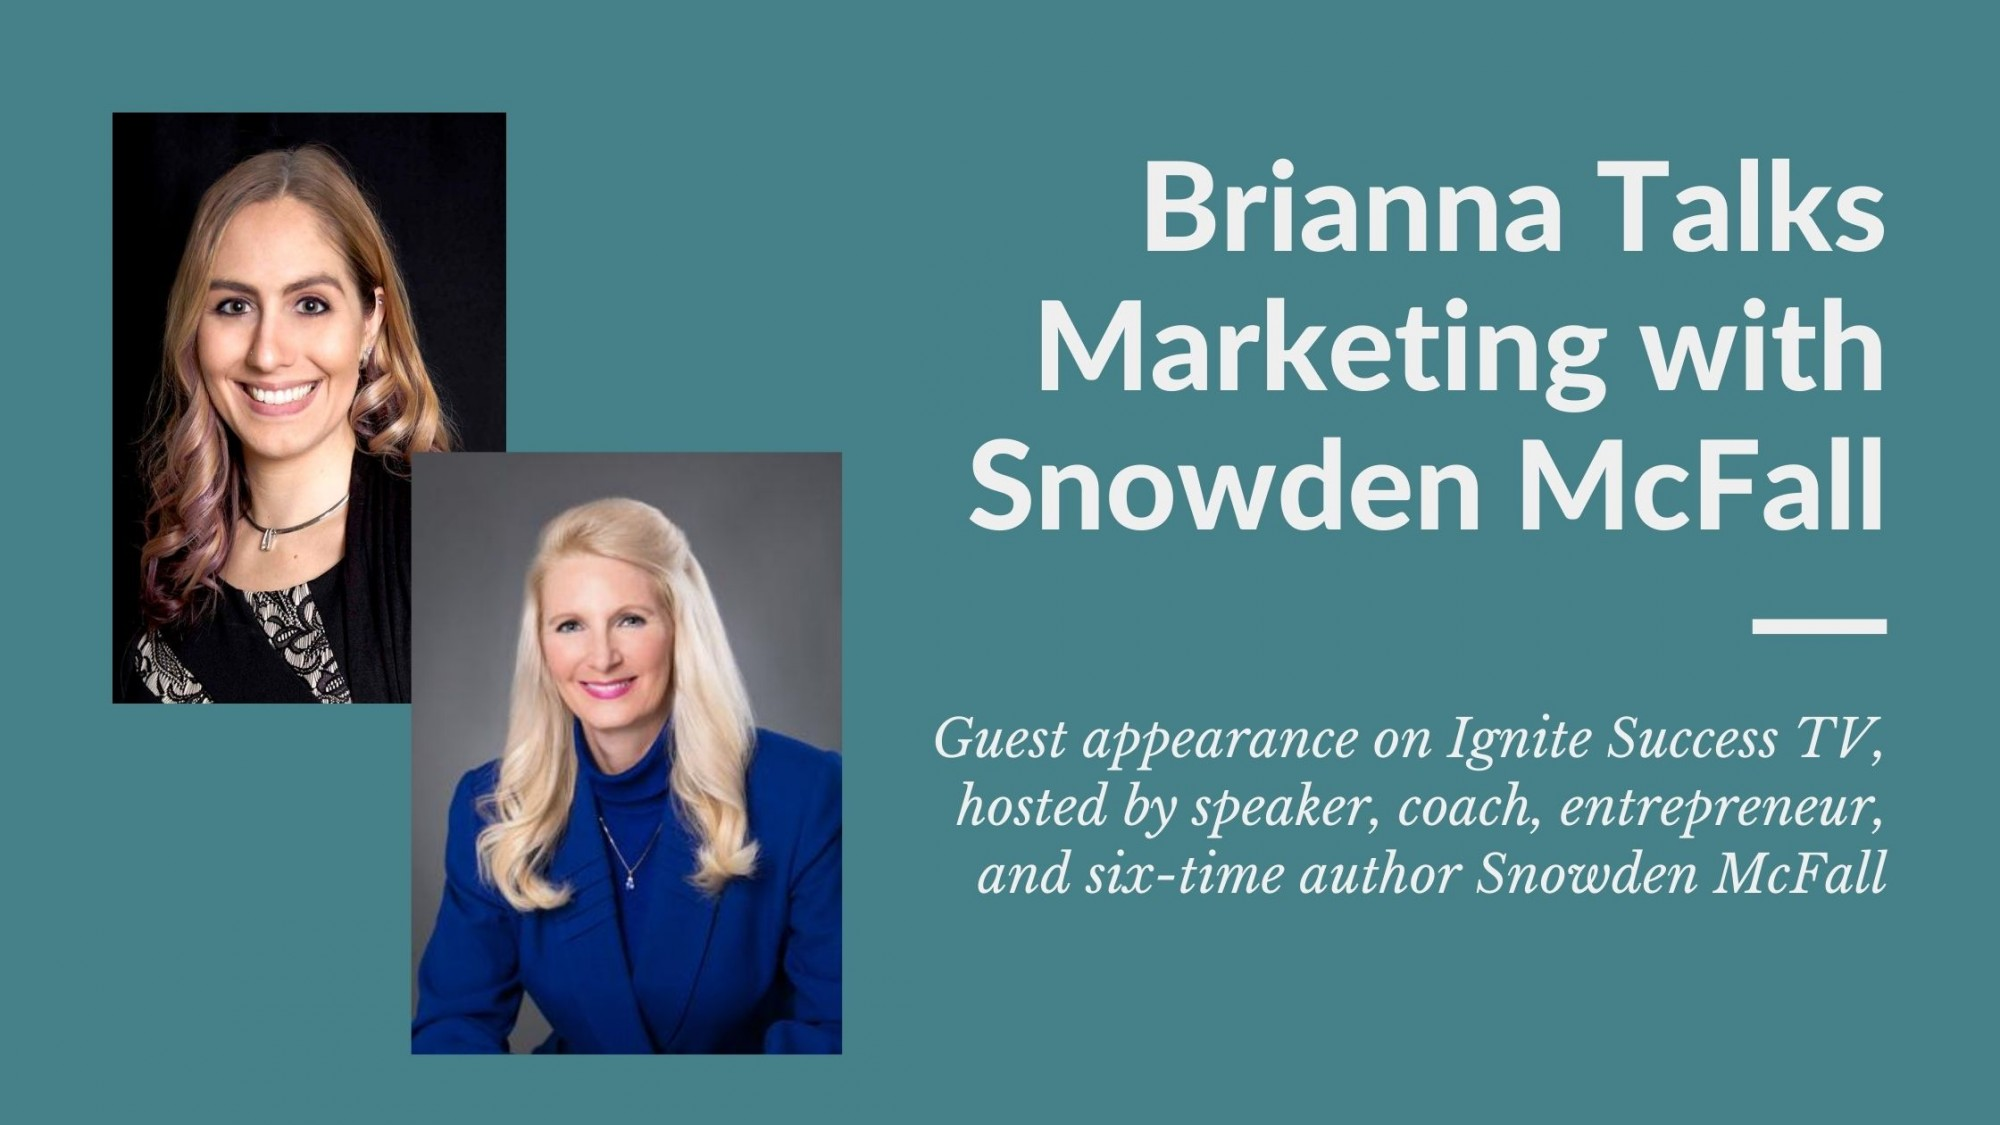 Brianna J. Grantham, PhD is interviewed as a guest on Snowden McFall's Ignite Success TV series